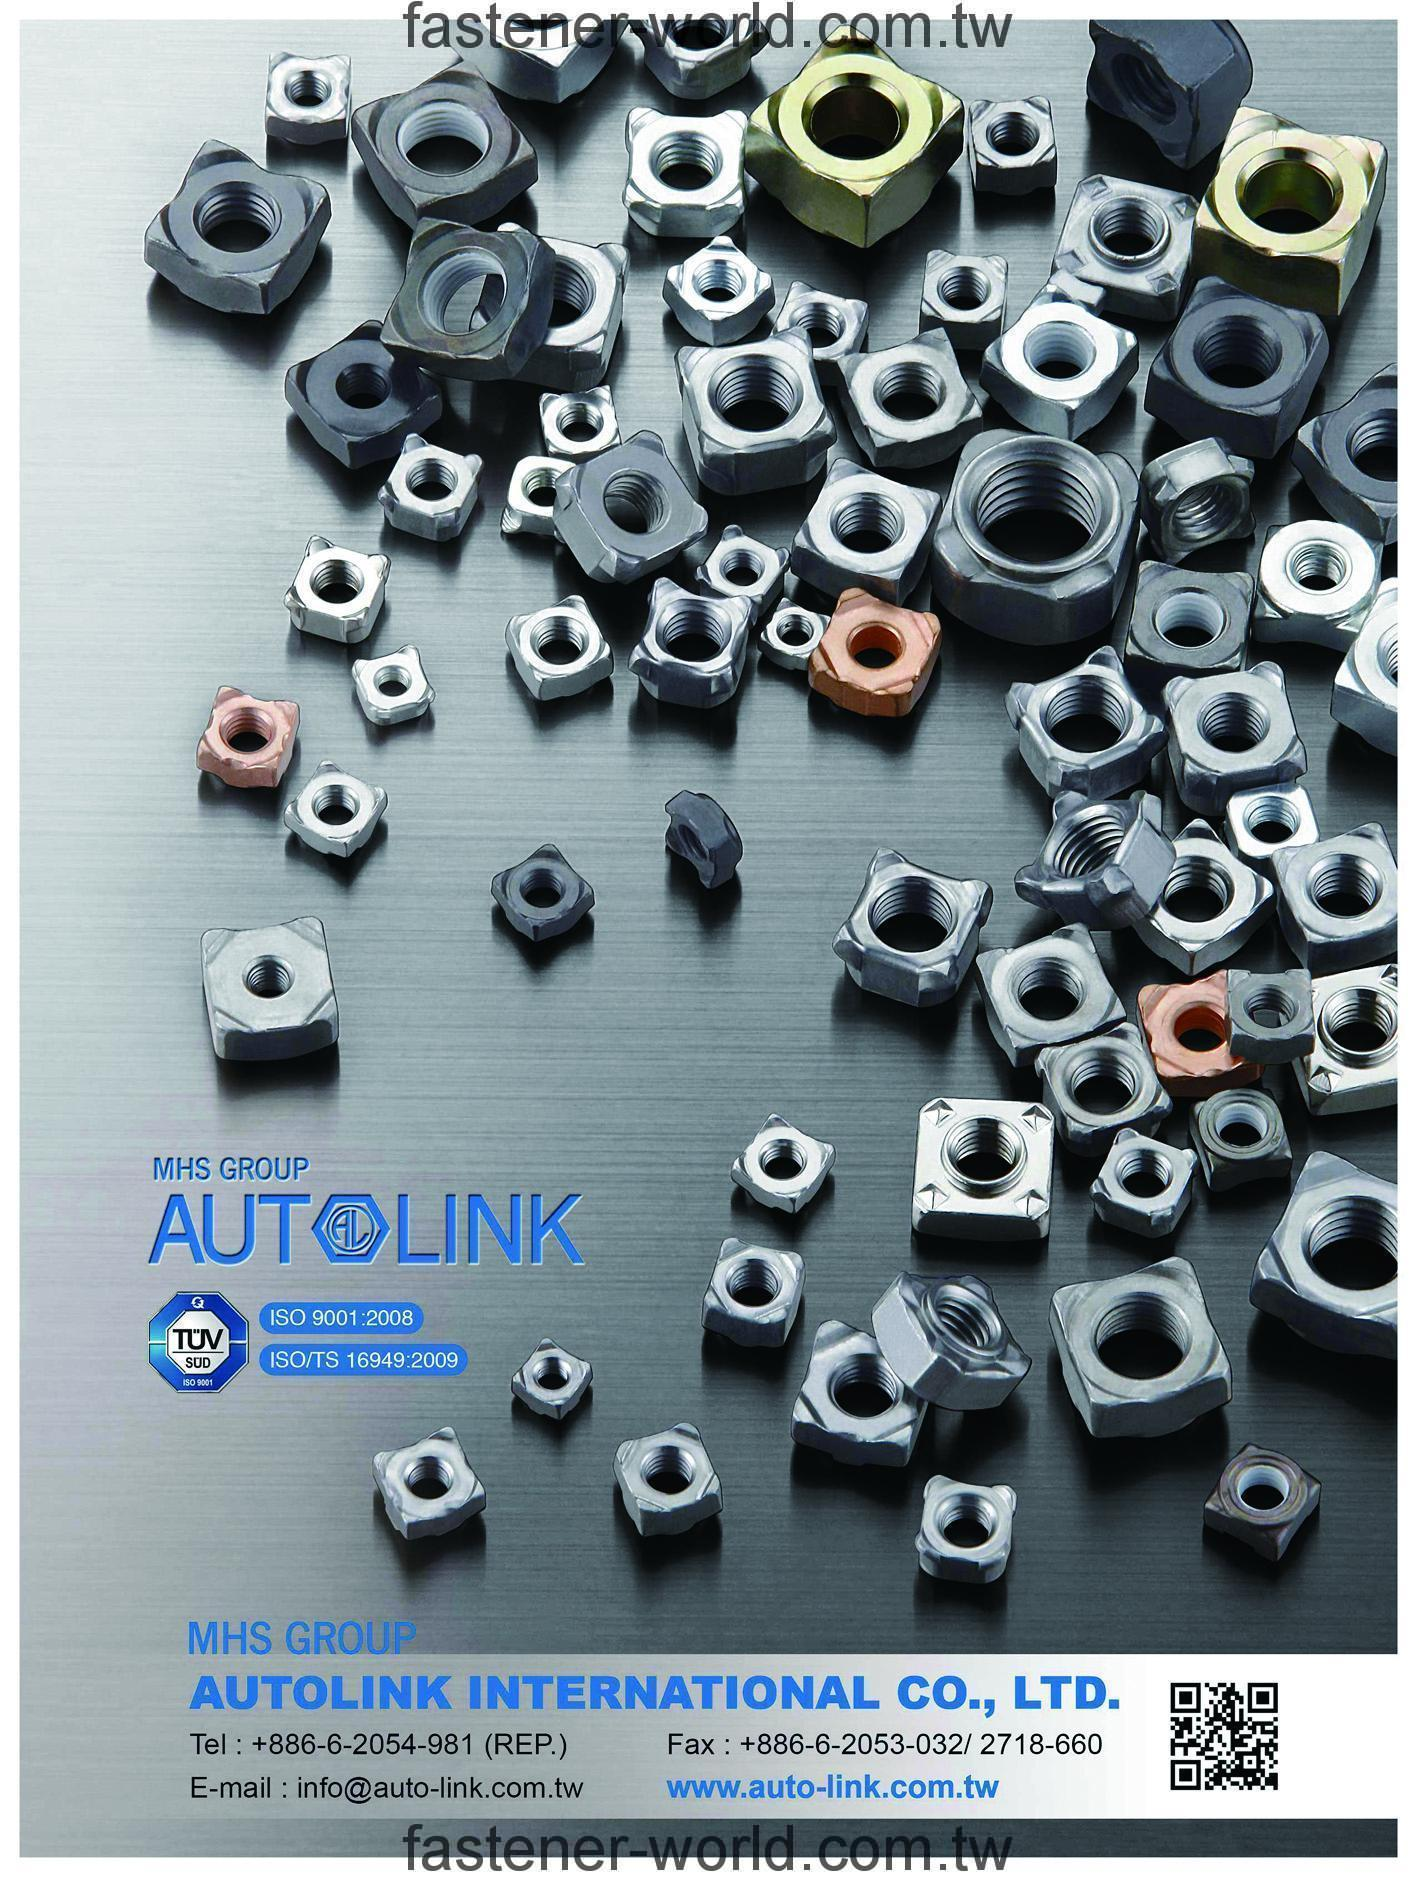 AUTOLINK INTERNATIONAL CO., LTD._Online Catalogues